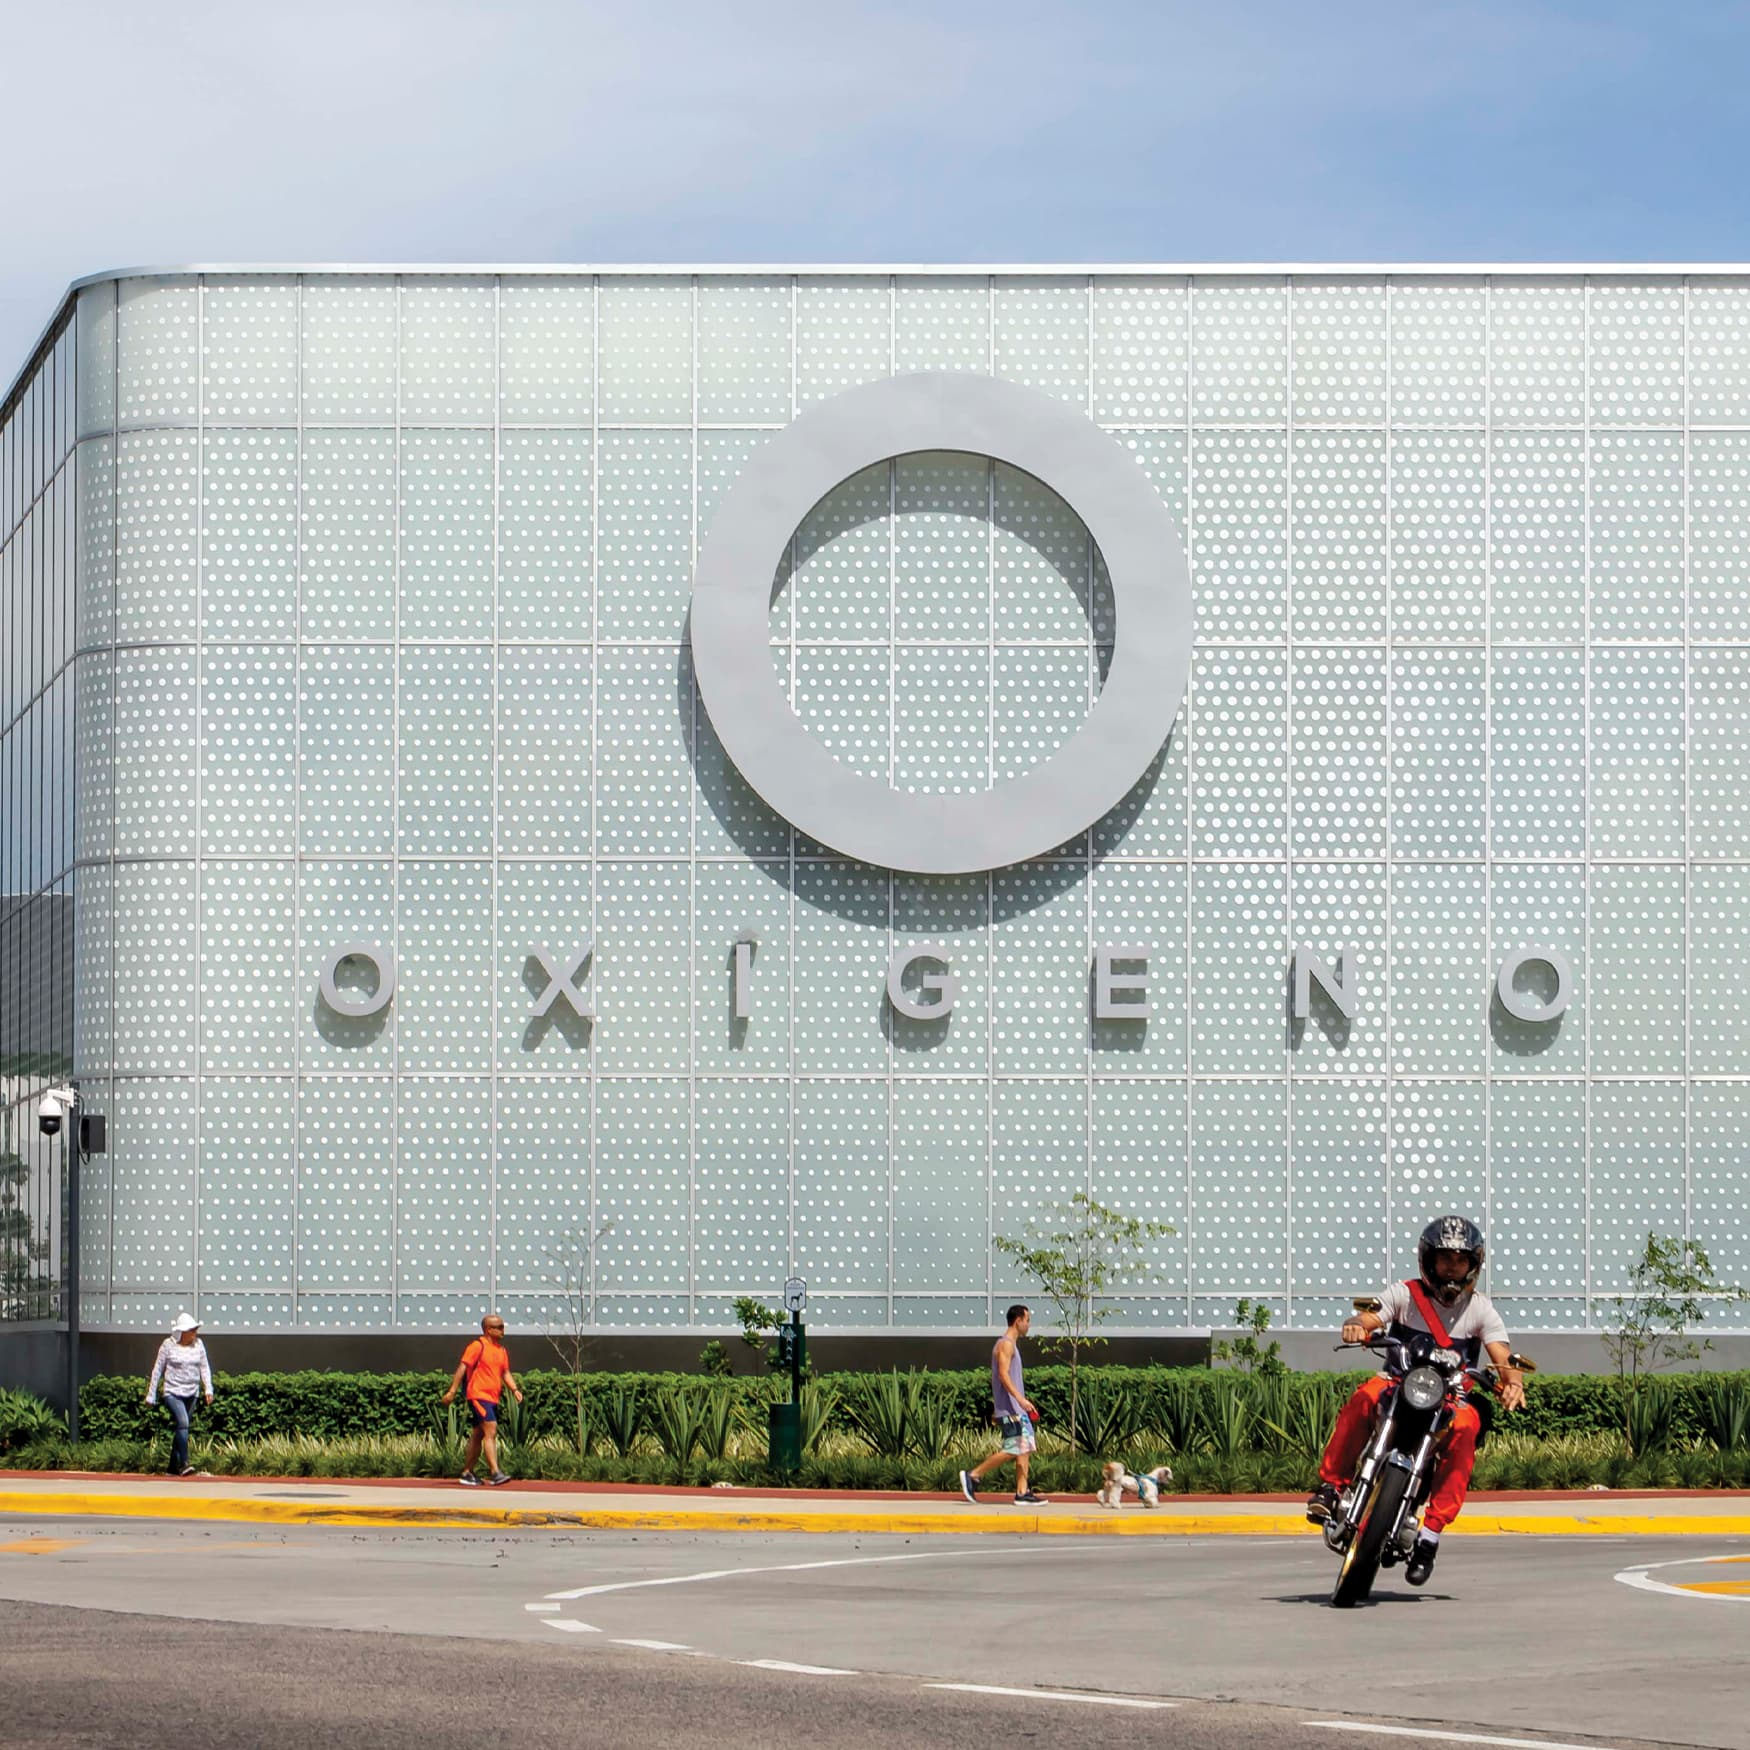 Oxigeno Retail building facade signage in the background as motorcycle rides in front